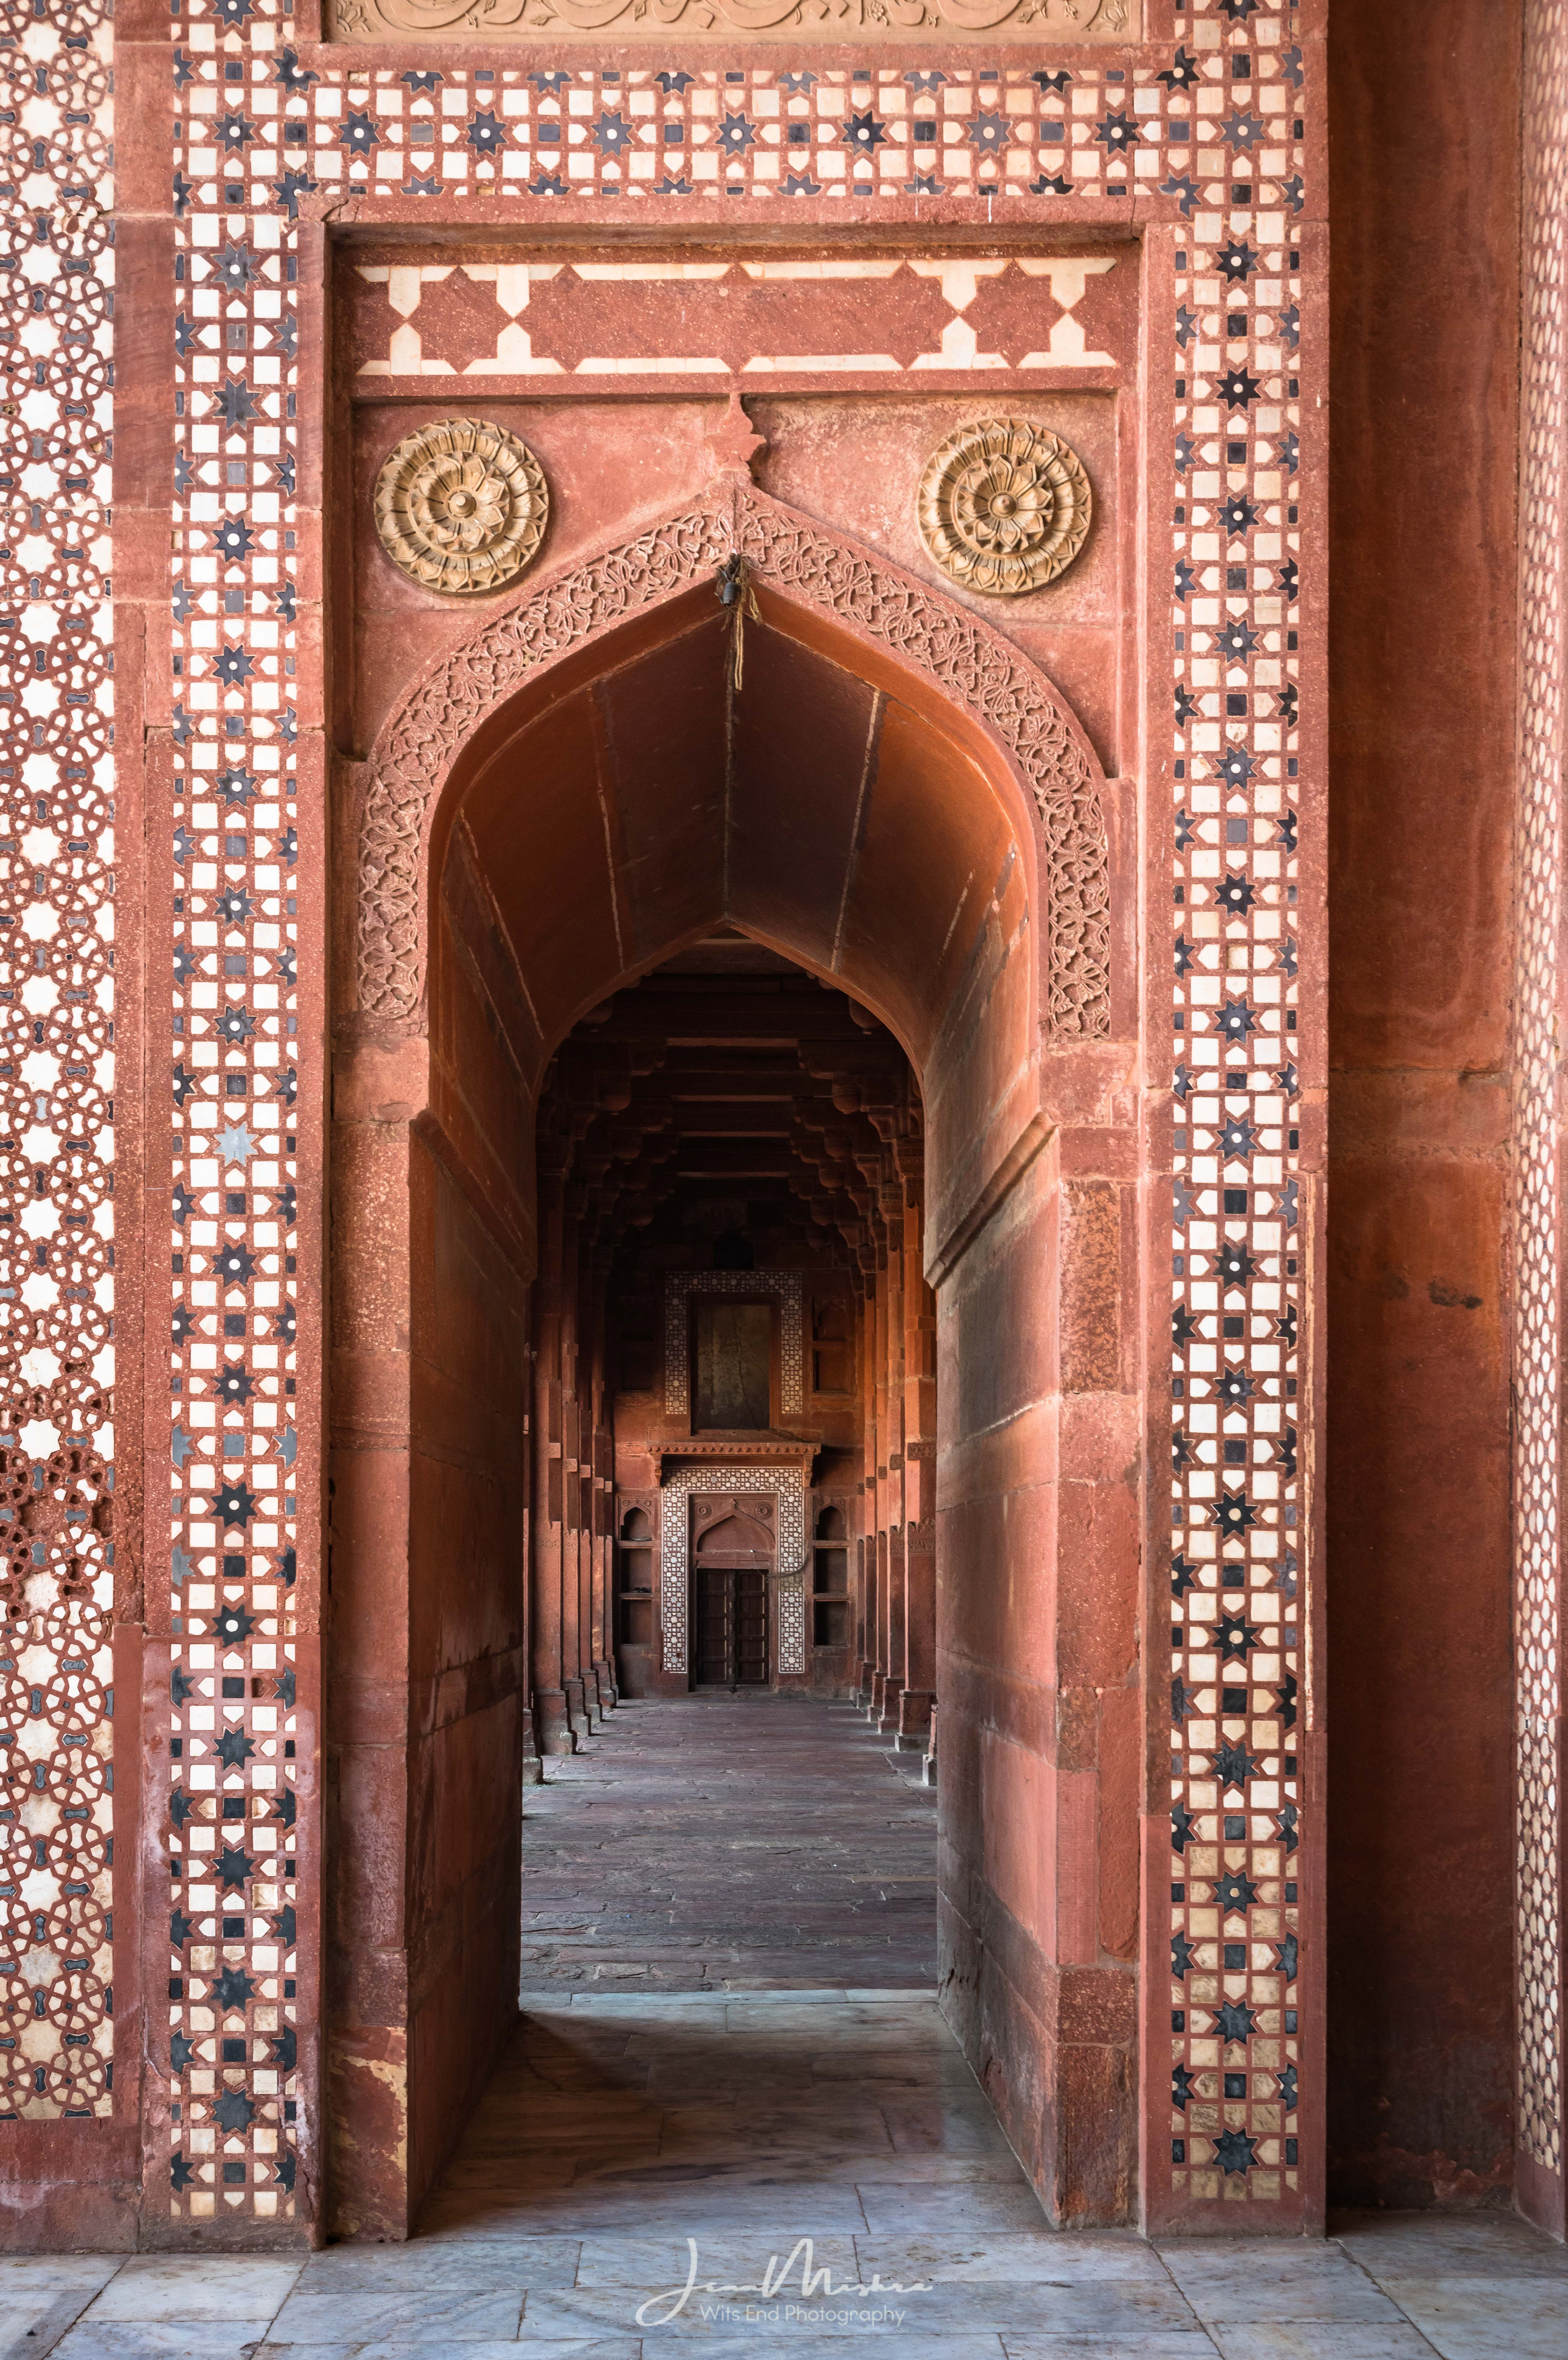 Architectural detail at the Fatehpur Sikri Mosque.